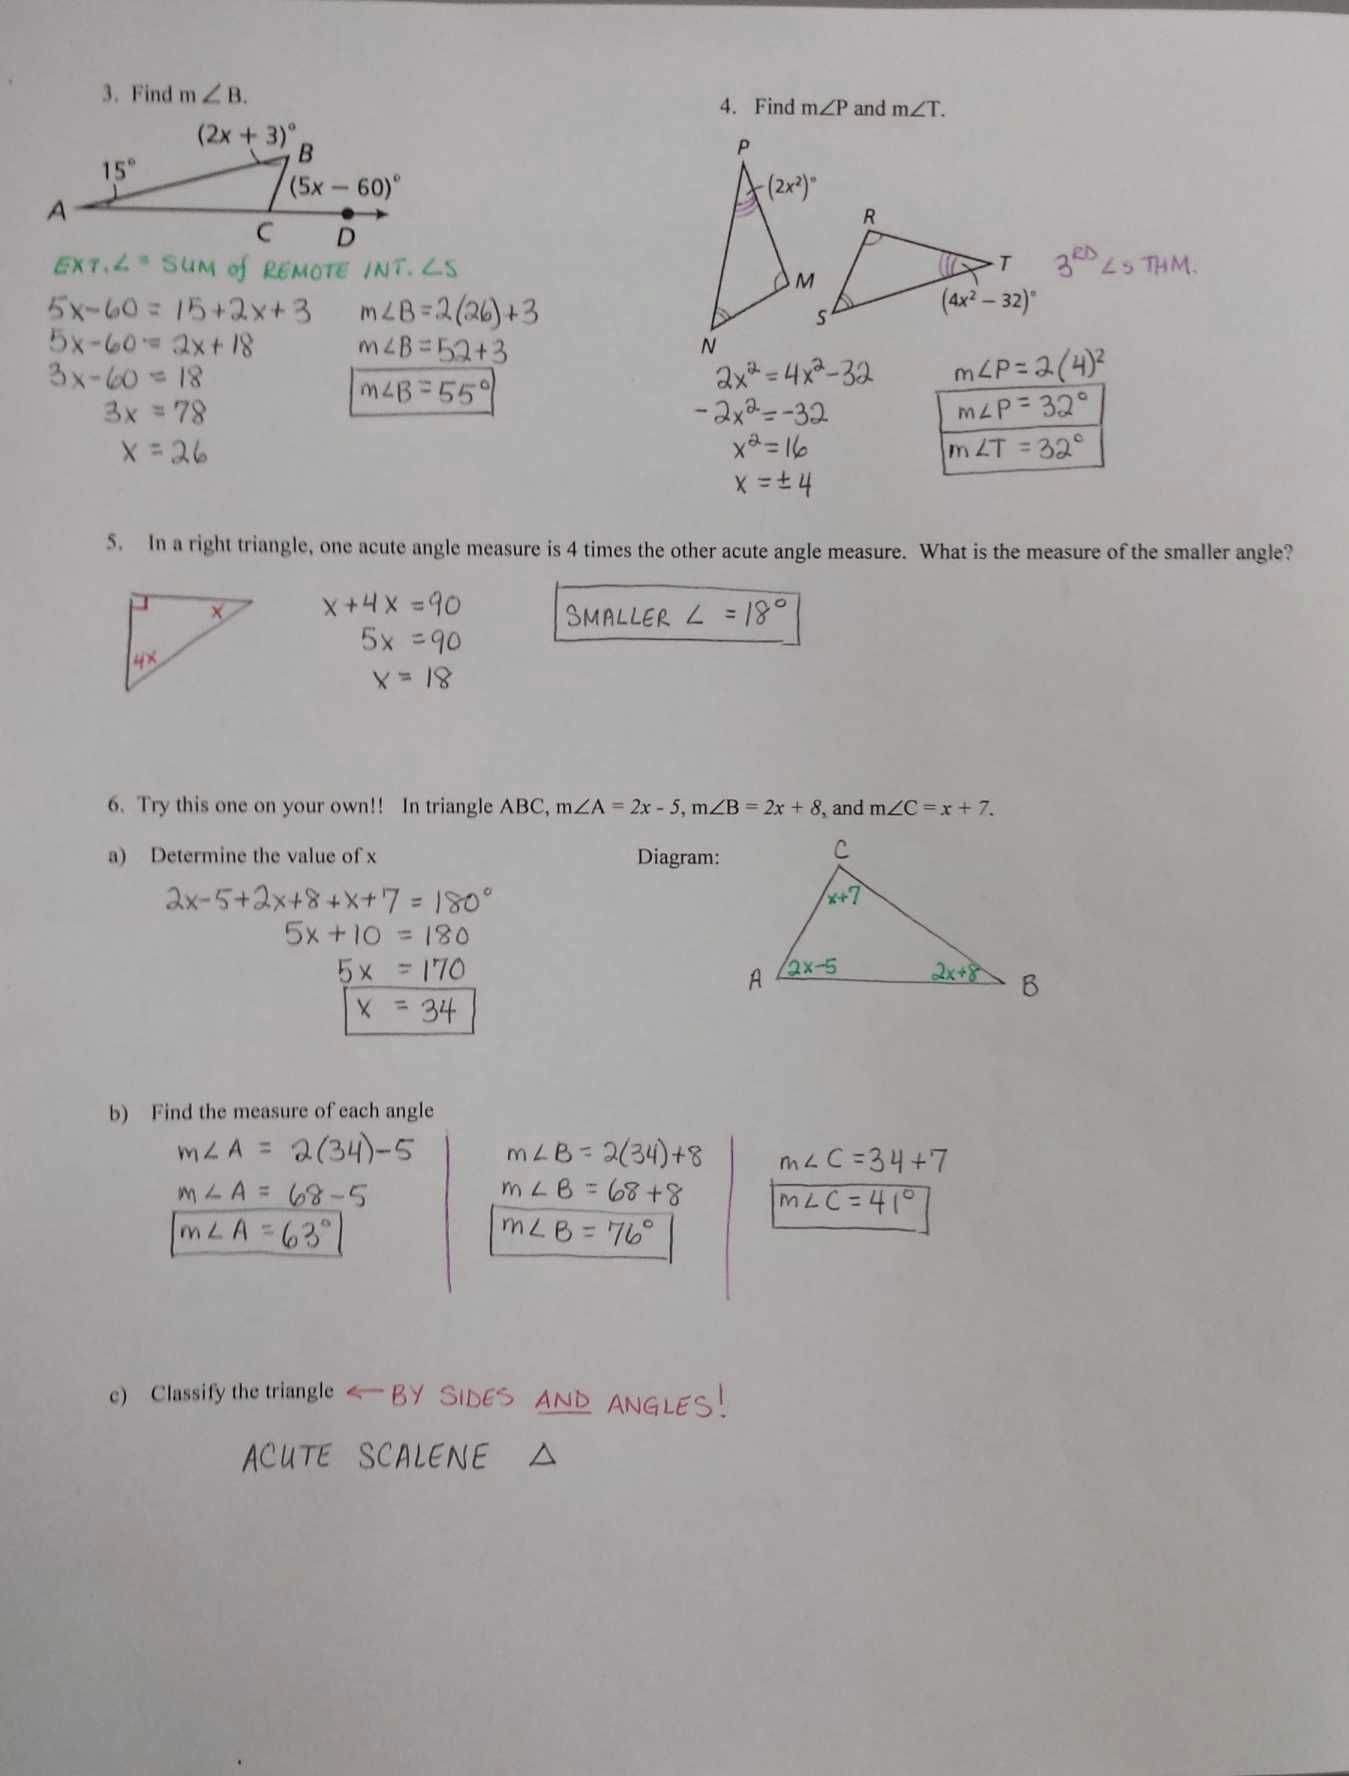 Parallel Lines Proofs Worksheet Answers Fresh Geometry Worksheet Congruent Triangles Sss and Sas Answers